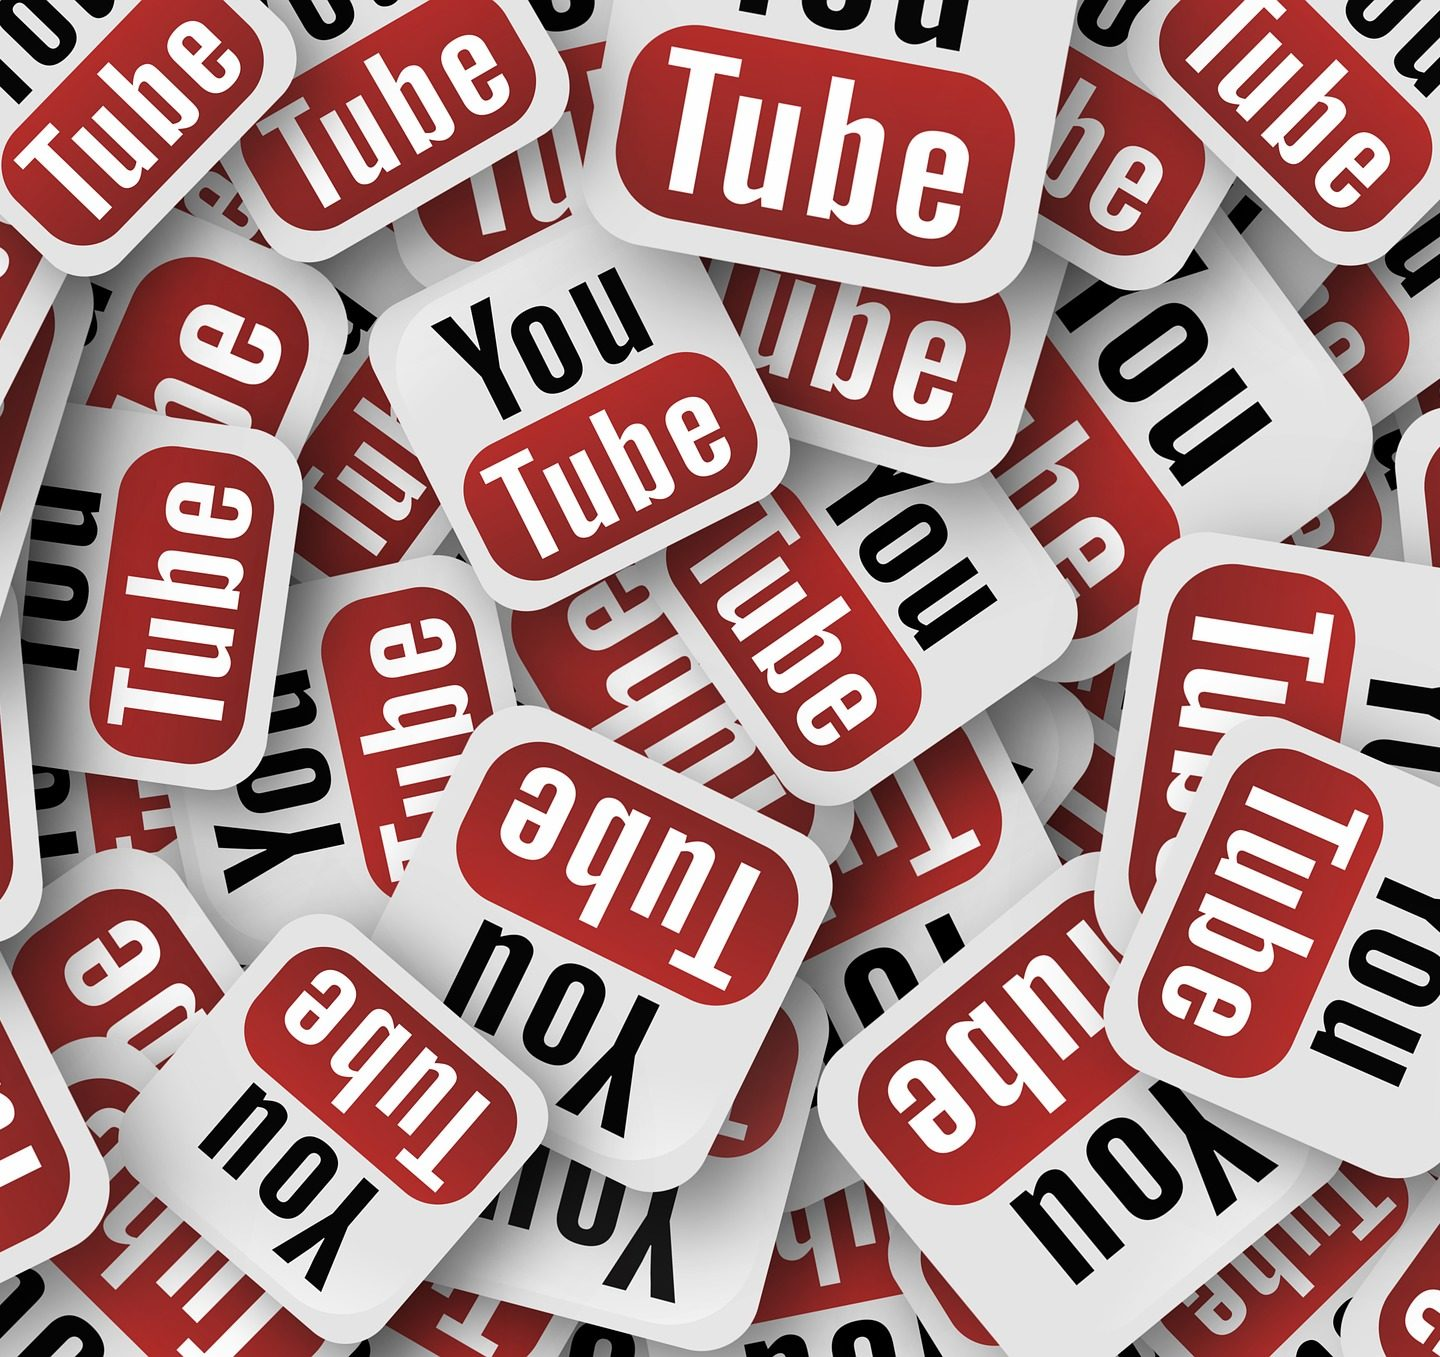 Use These 5 Platforms To Create Winning YouTube Video Titles And Get More Views